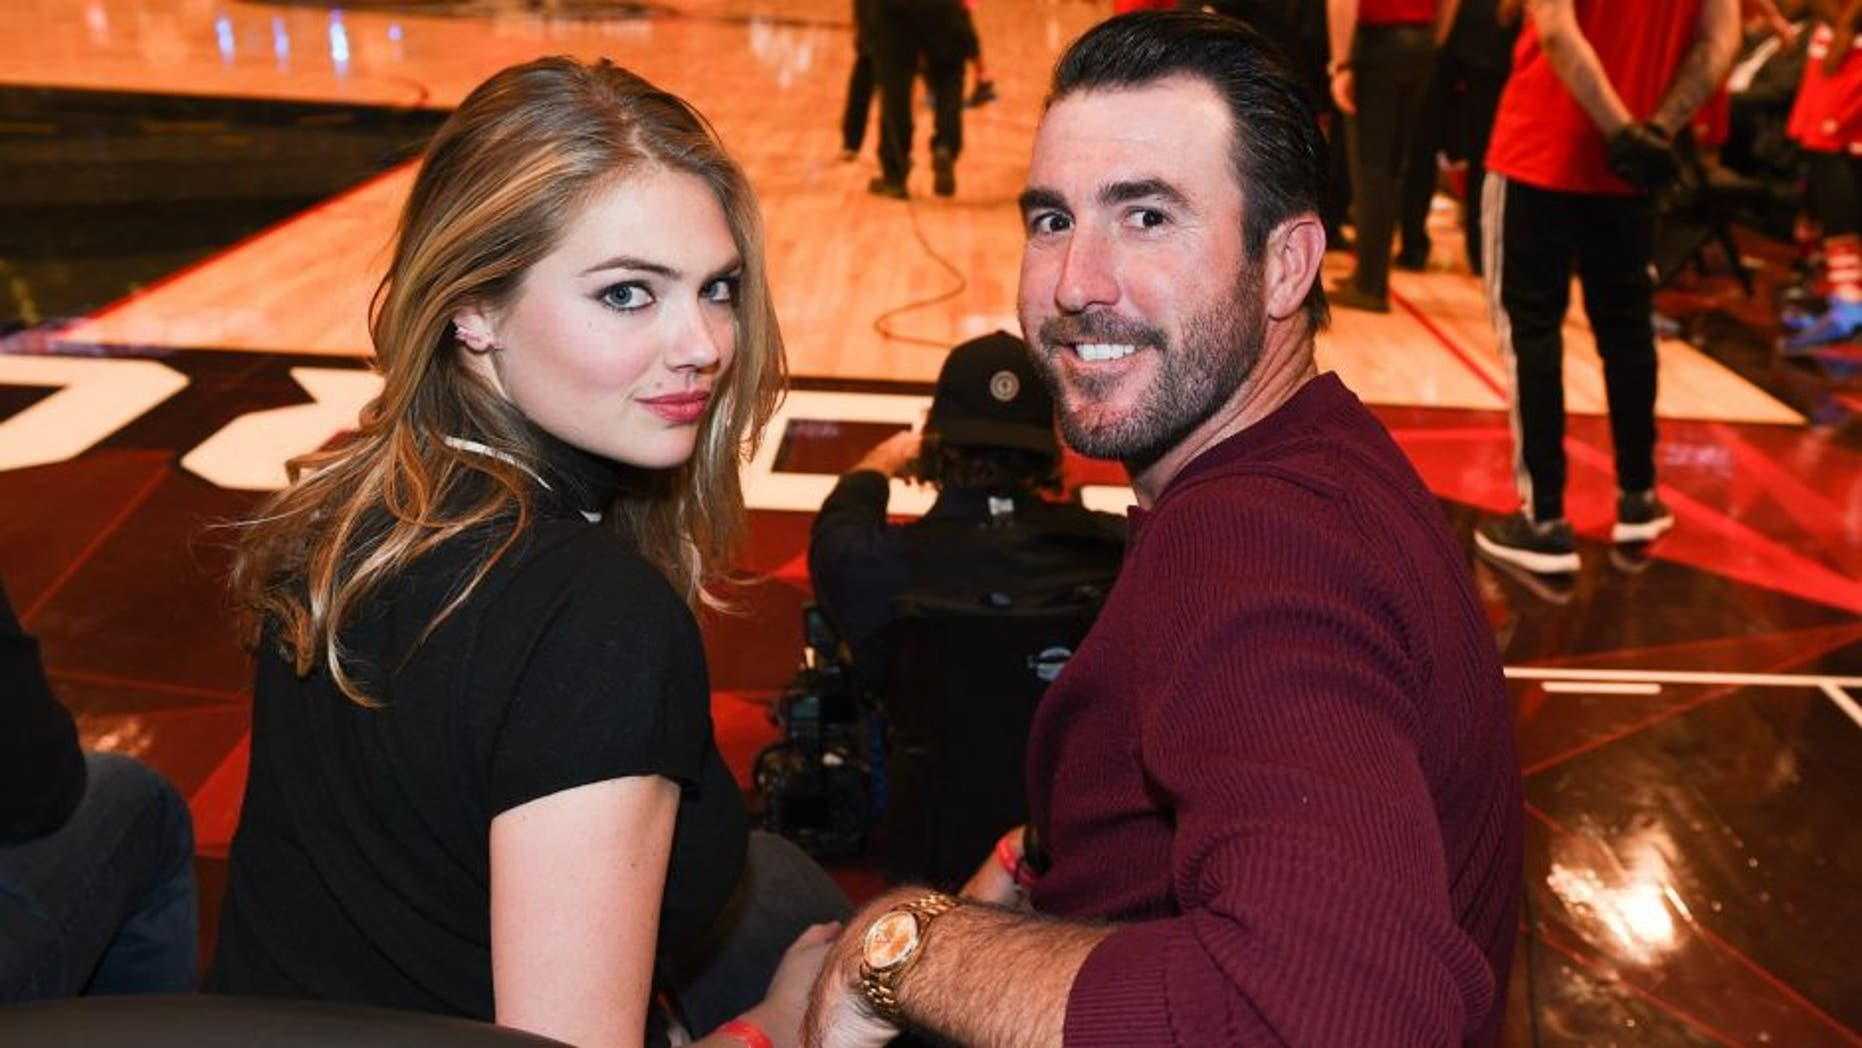 TORONTO, ON - FEBRUARY 14: Model/ Actress Kate Upton (L) and Justin Verlander attends the 2016 NBA All-Star Game at Air Canada Centre on February 14, 2016 in Toronto, Canada. (Photo by George Pimentel/Getty Images)